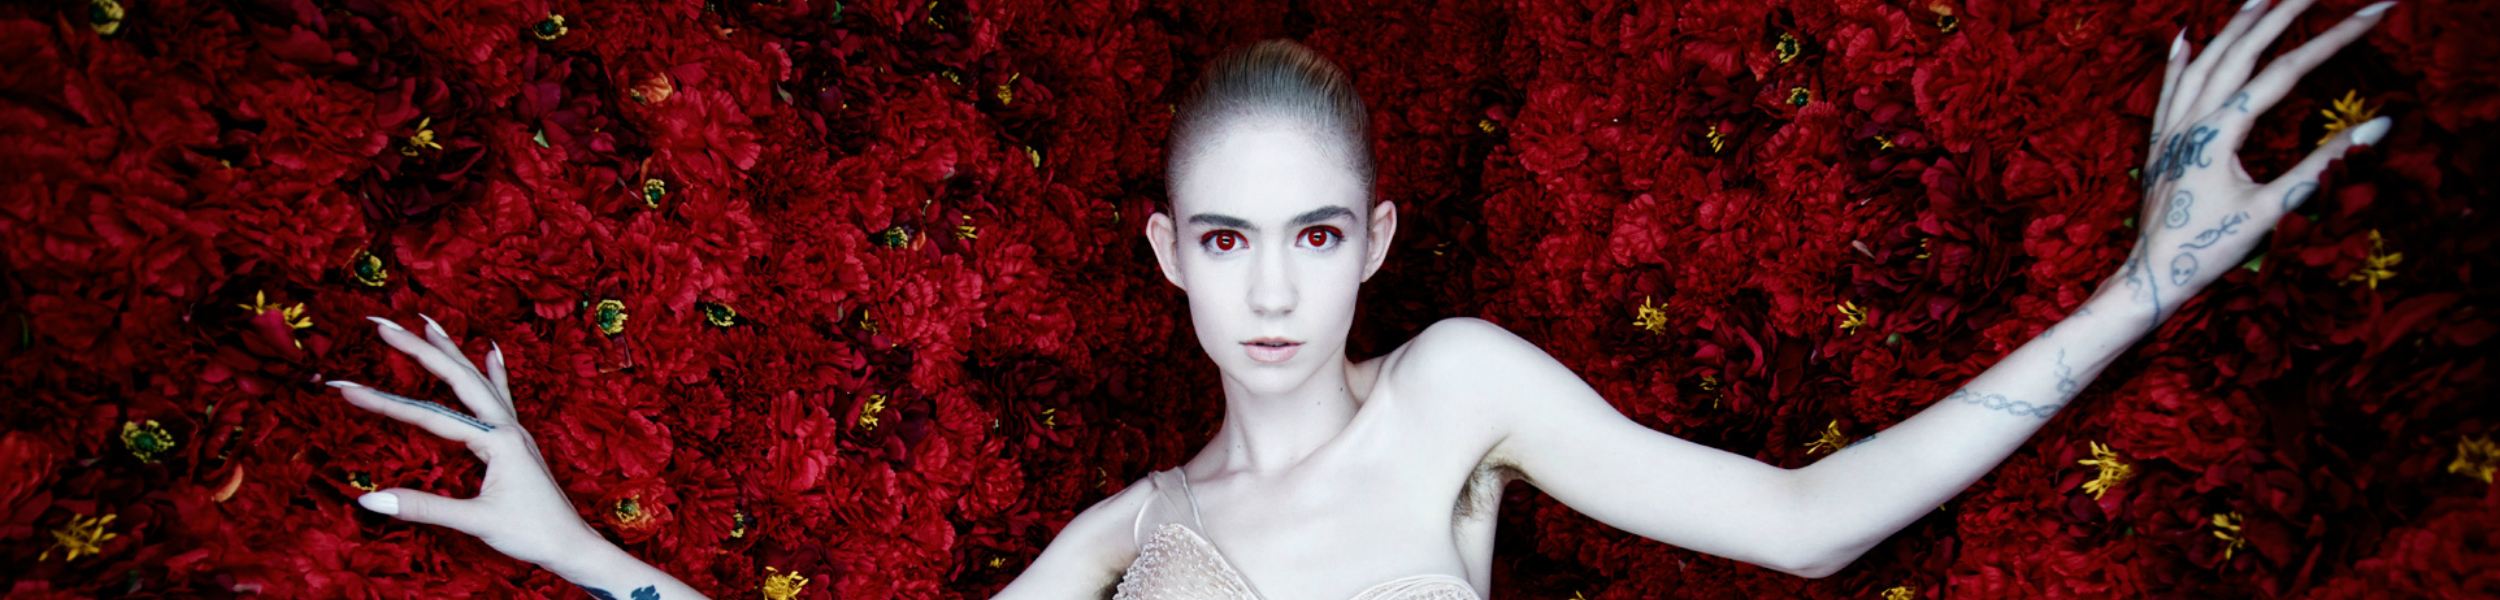 Grimes - 4AD To Release Blood Diamonds & Grimes Collaboration 'Phone Sex'